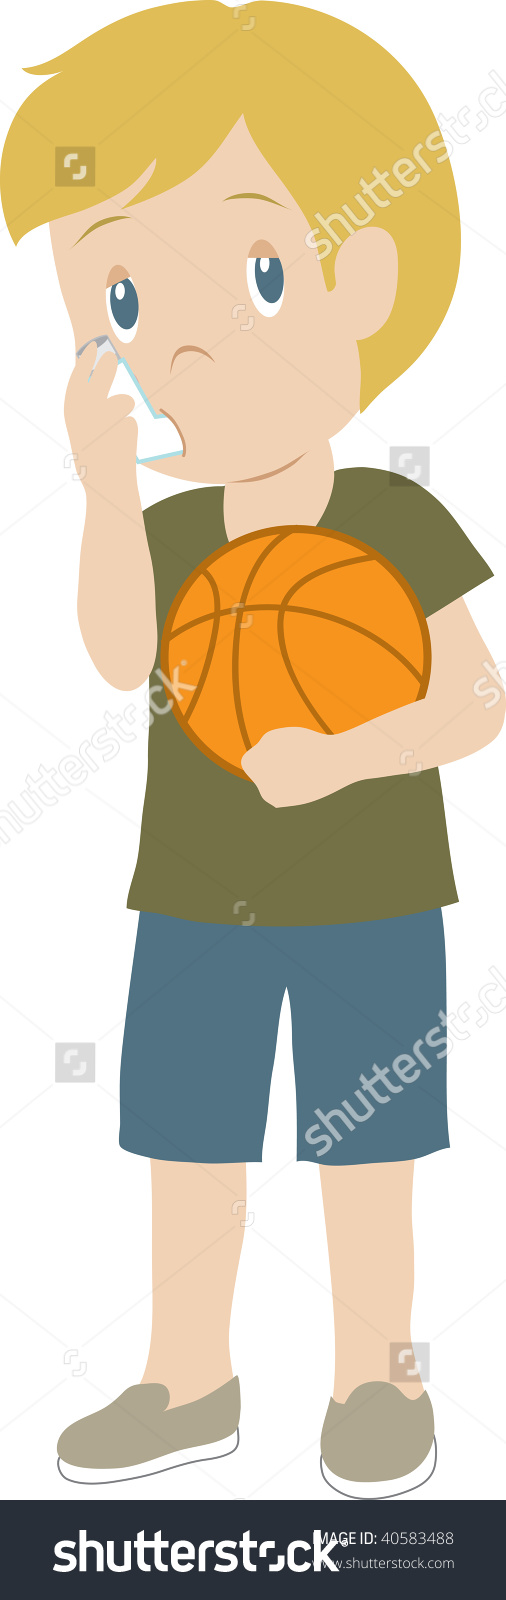 clipart of boy with inhaler #1